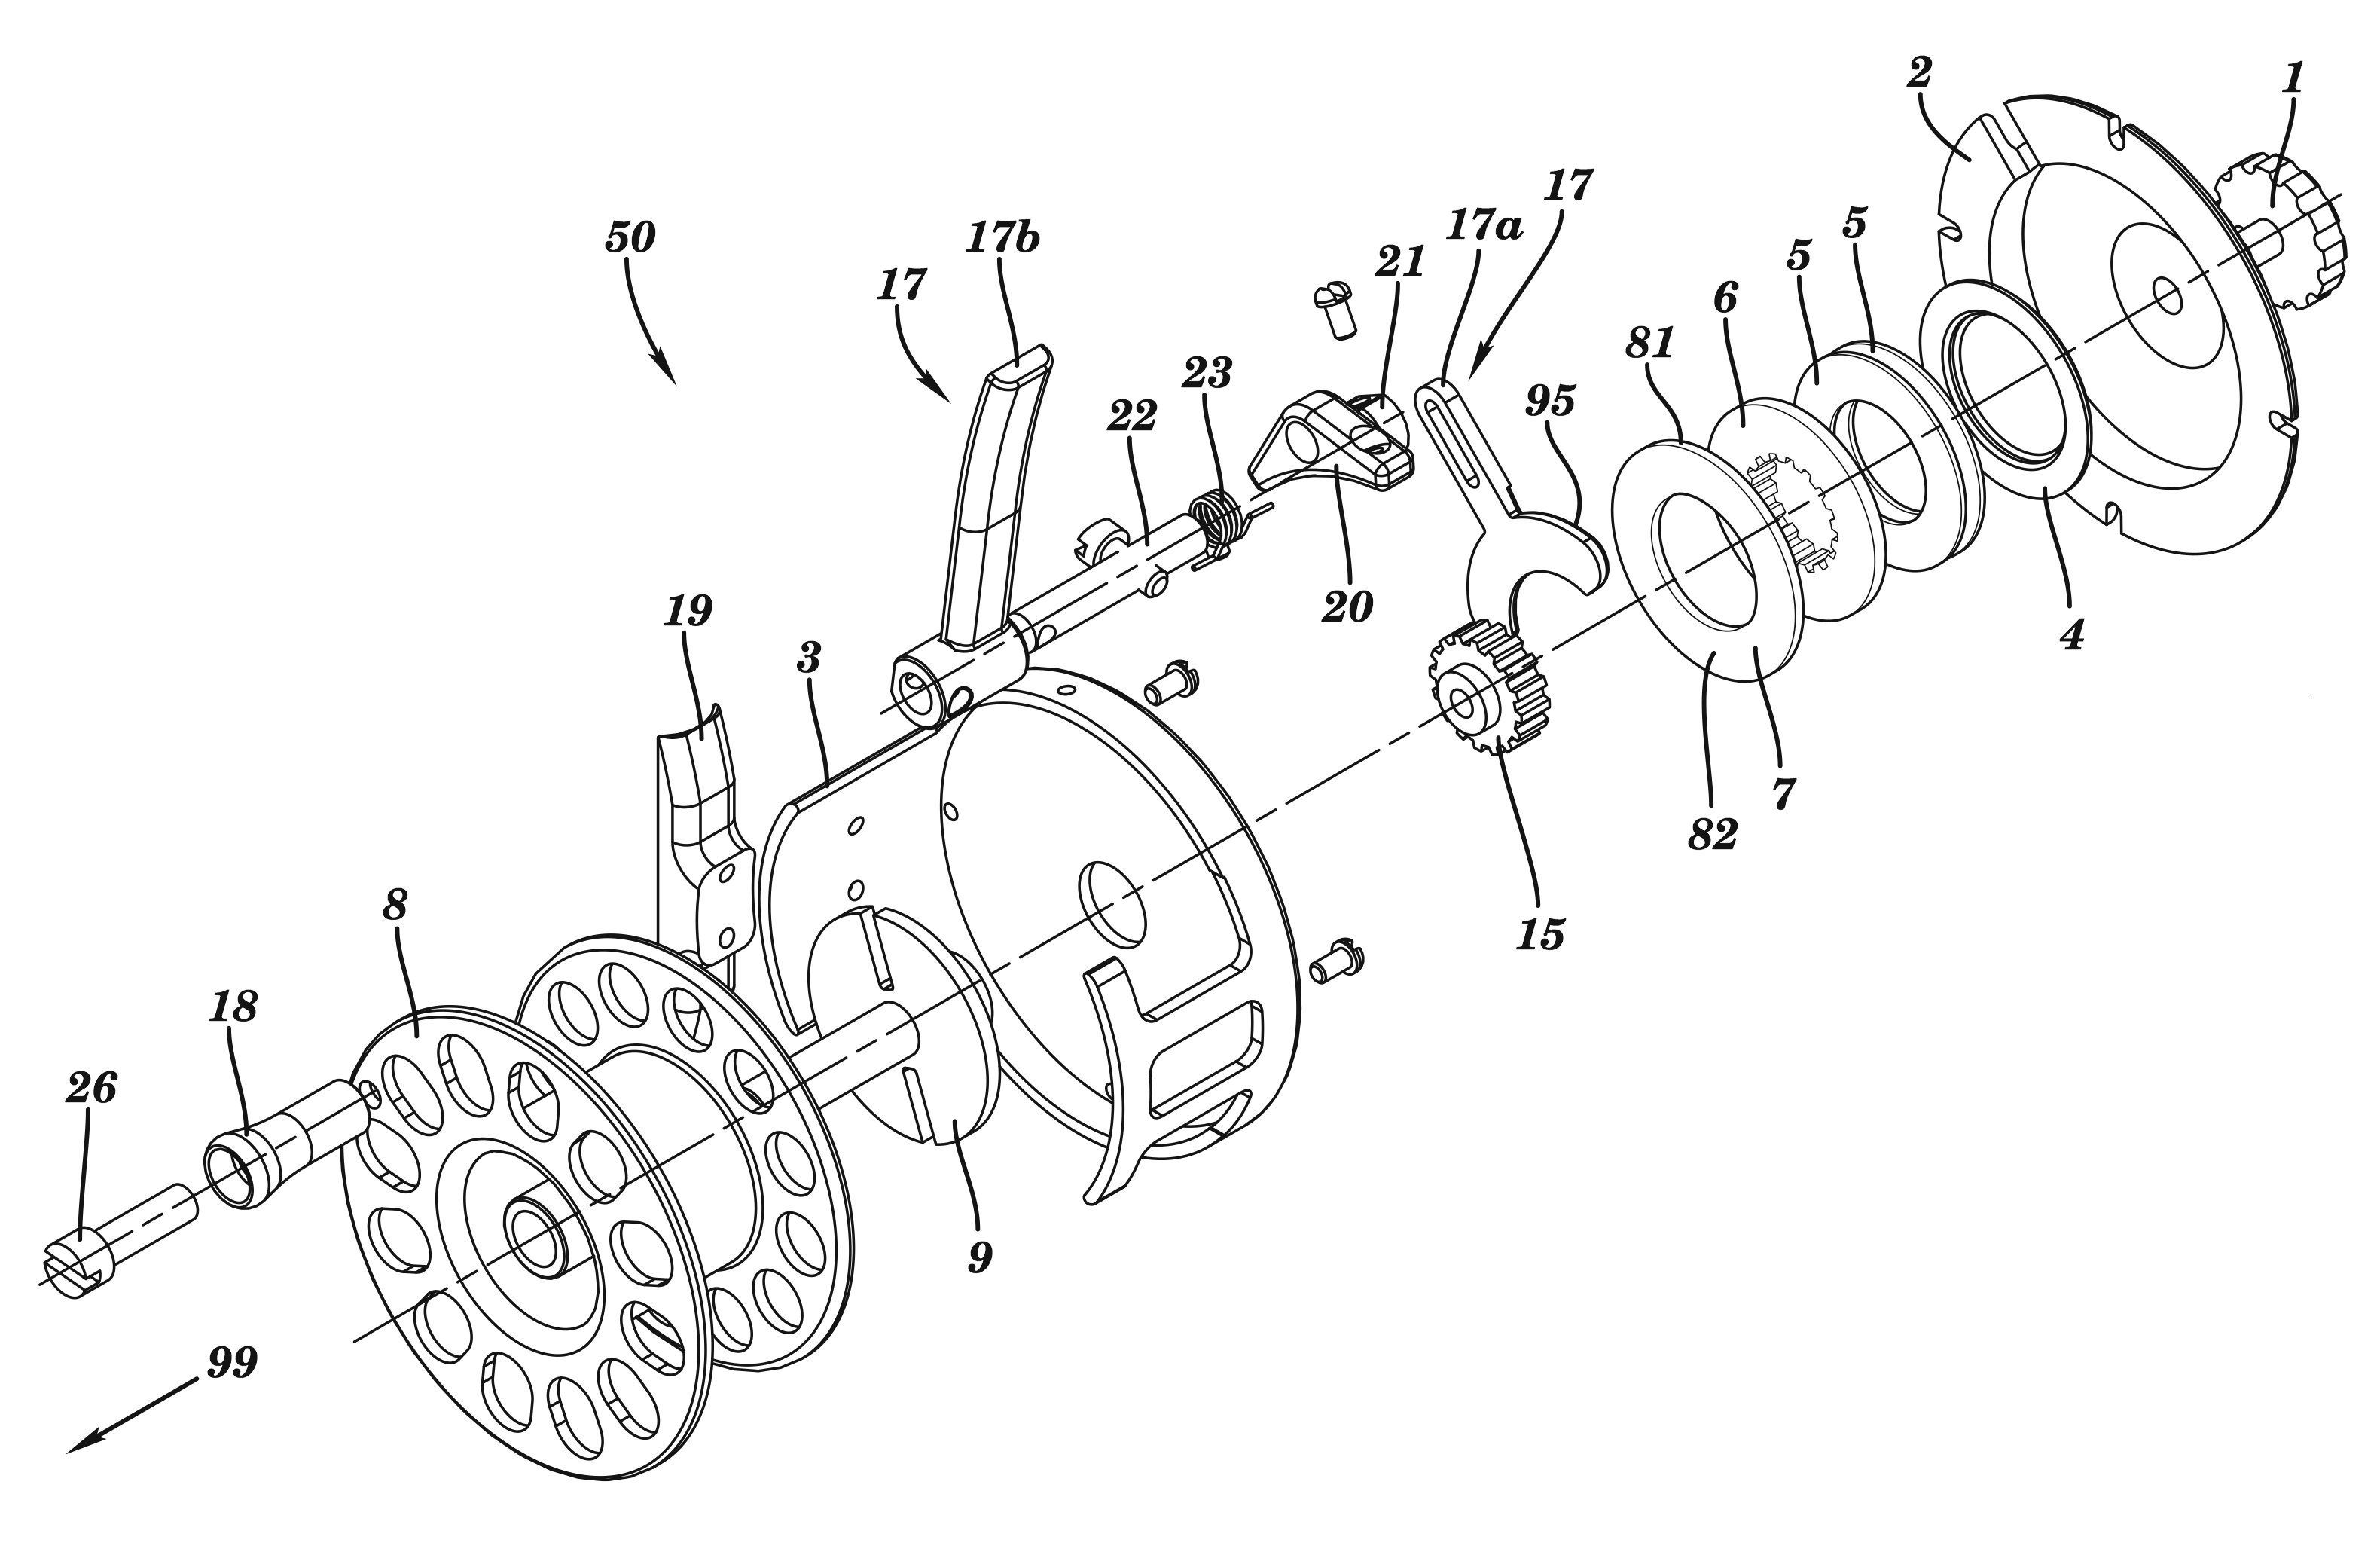 05_ptiserviceco_patent_drawing_mechanical.png